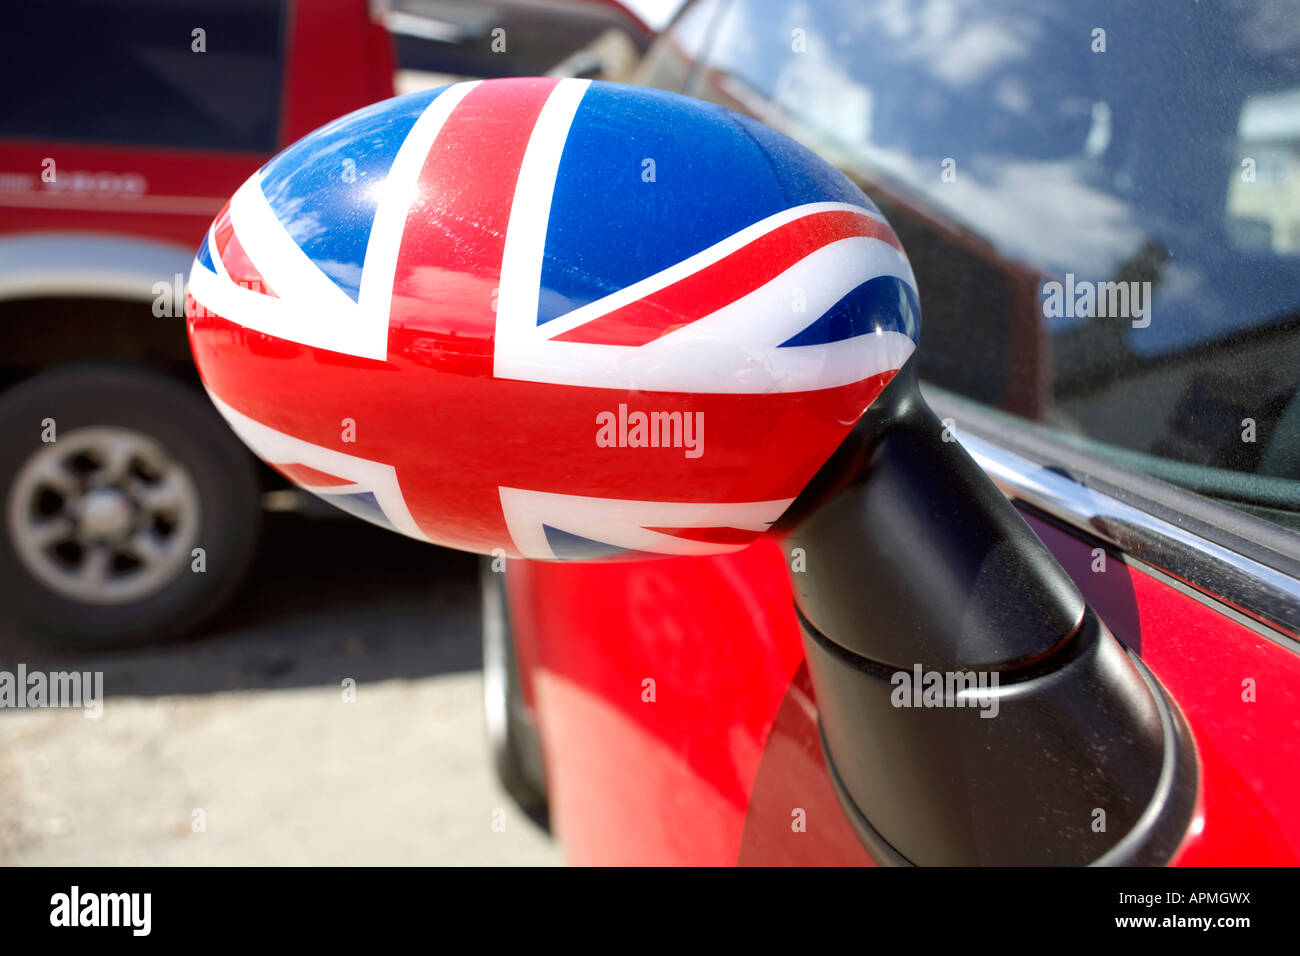 union jack wing mirror union jack union flag wing mirror on mini stock photo 15823669 alamy. Black Bedroom Furniture Sets. Home Design Ideas